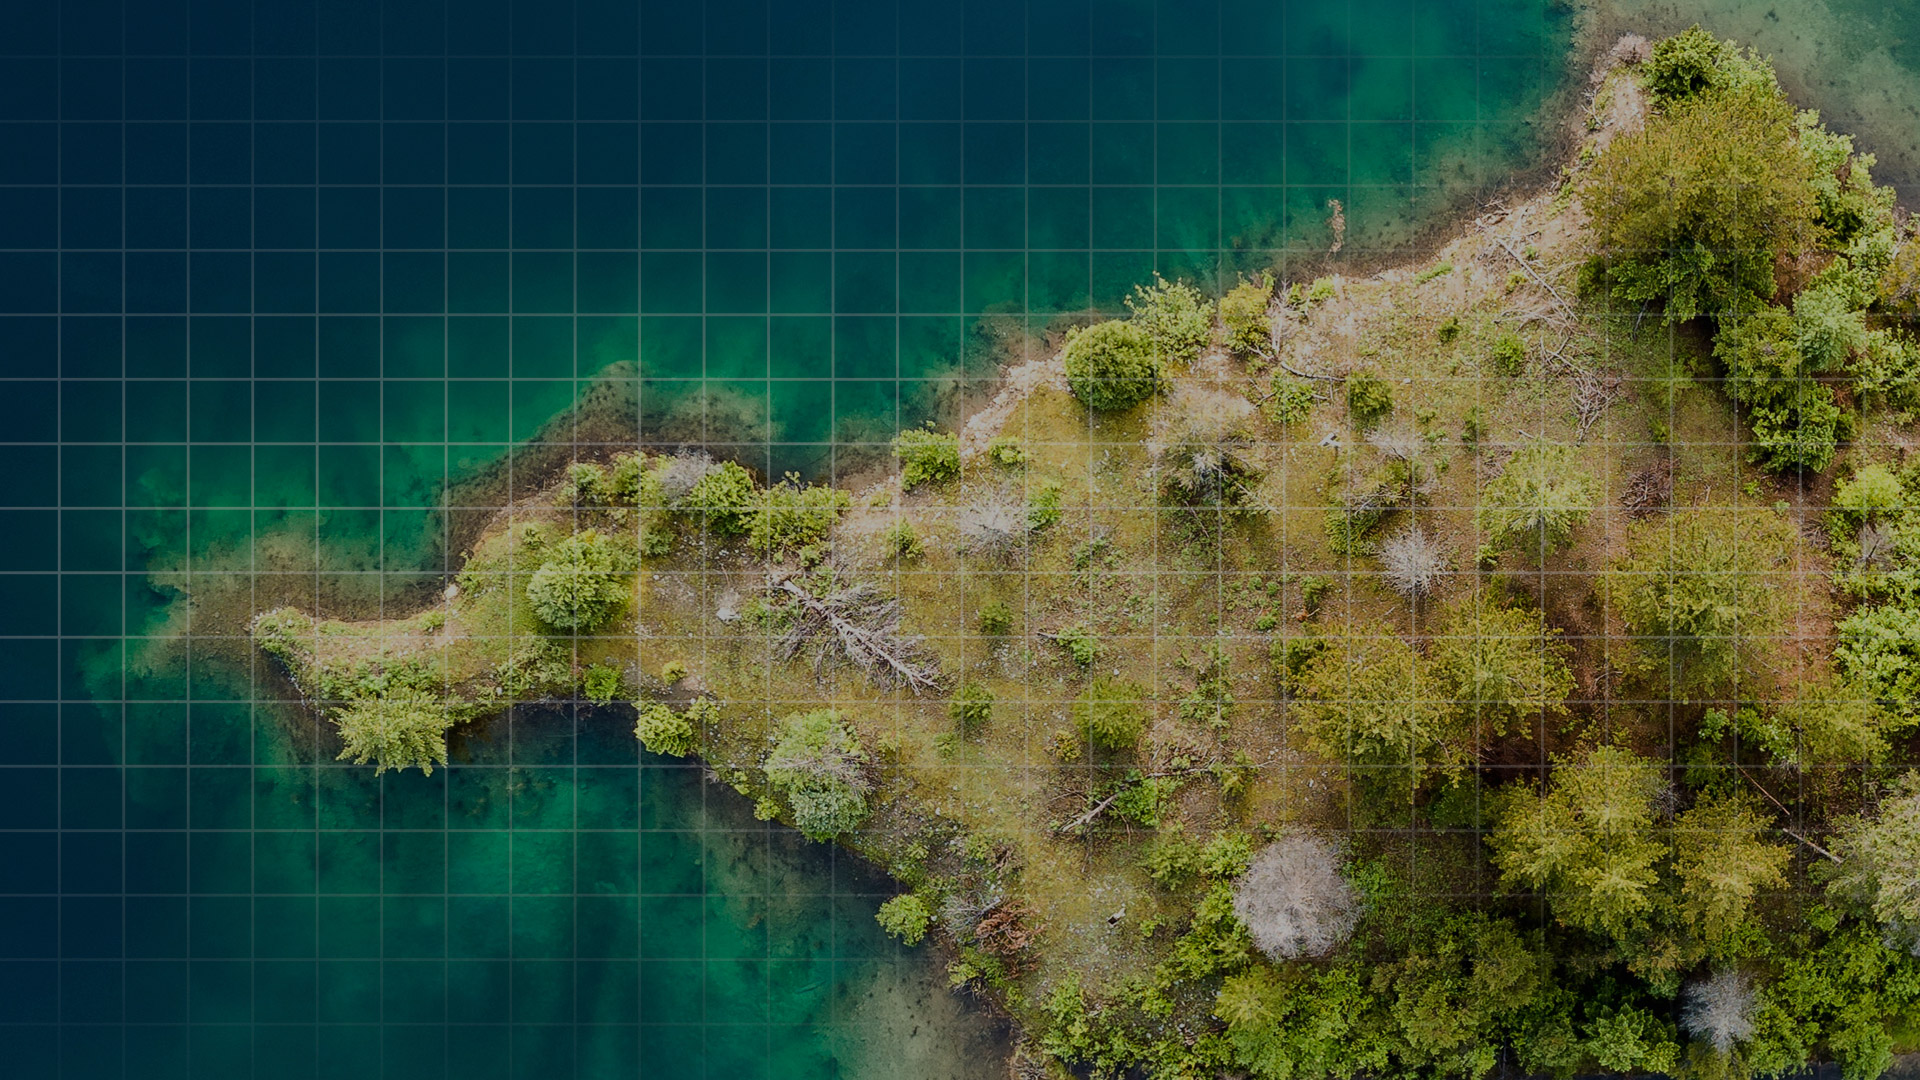 bird eye view of tree covered island with surrounding sea